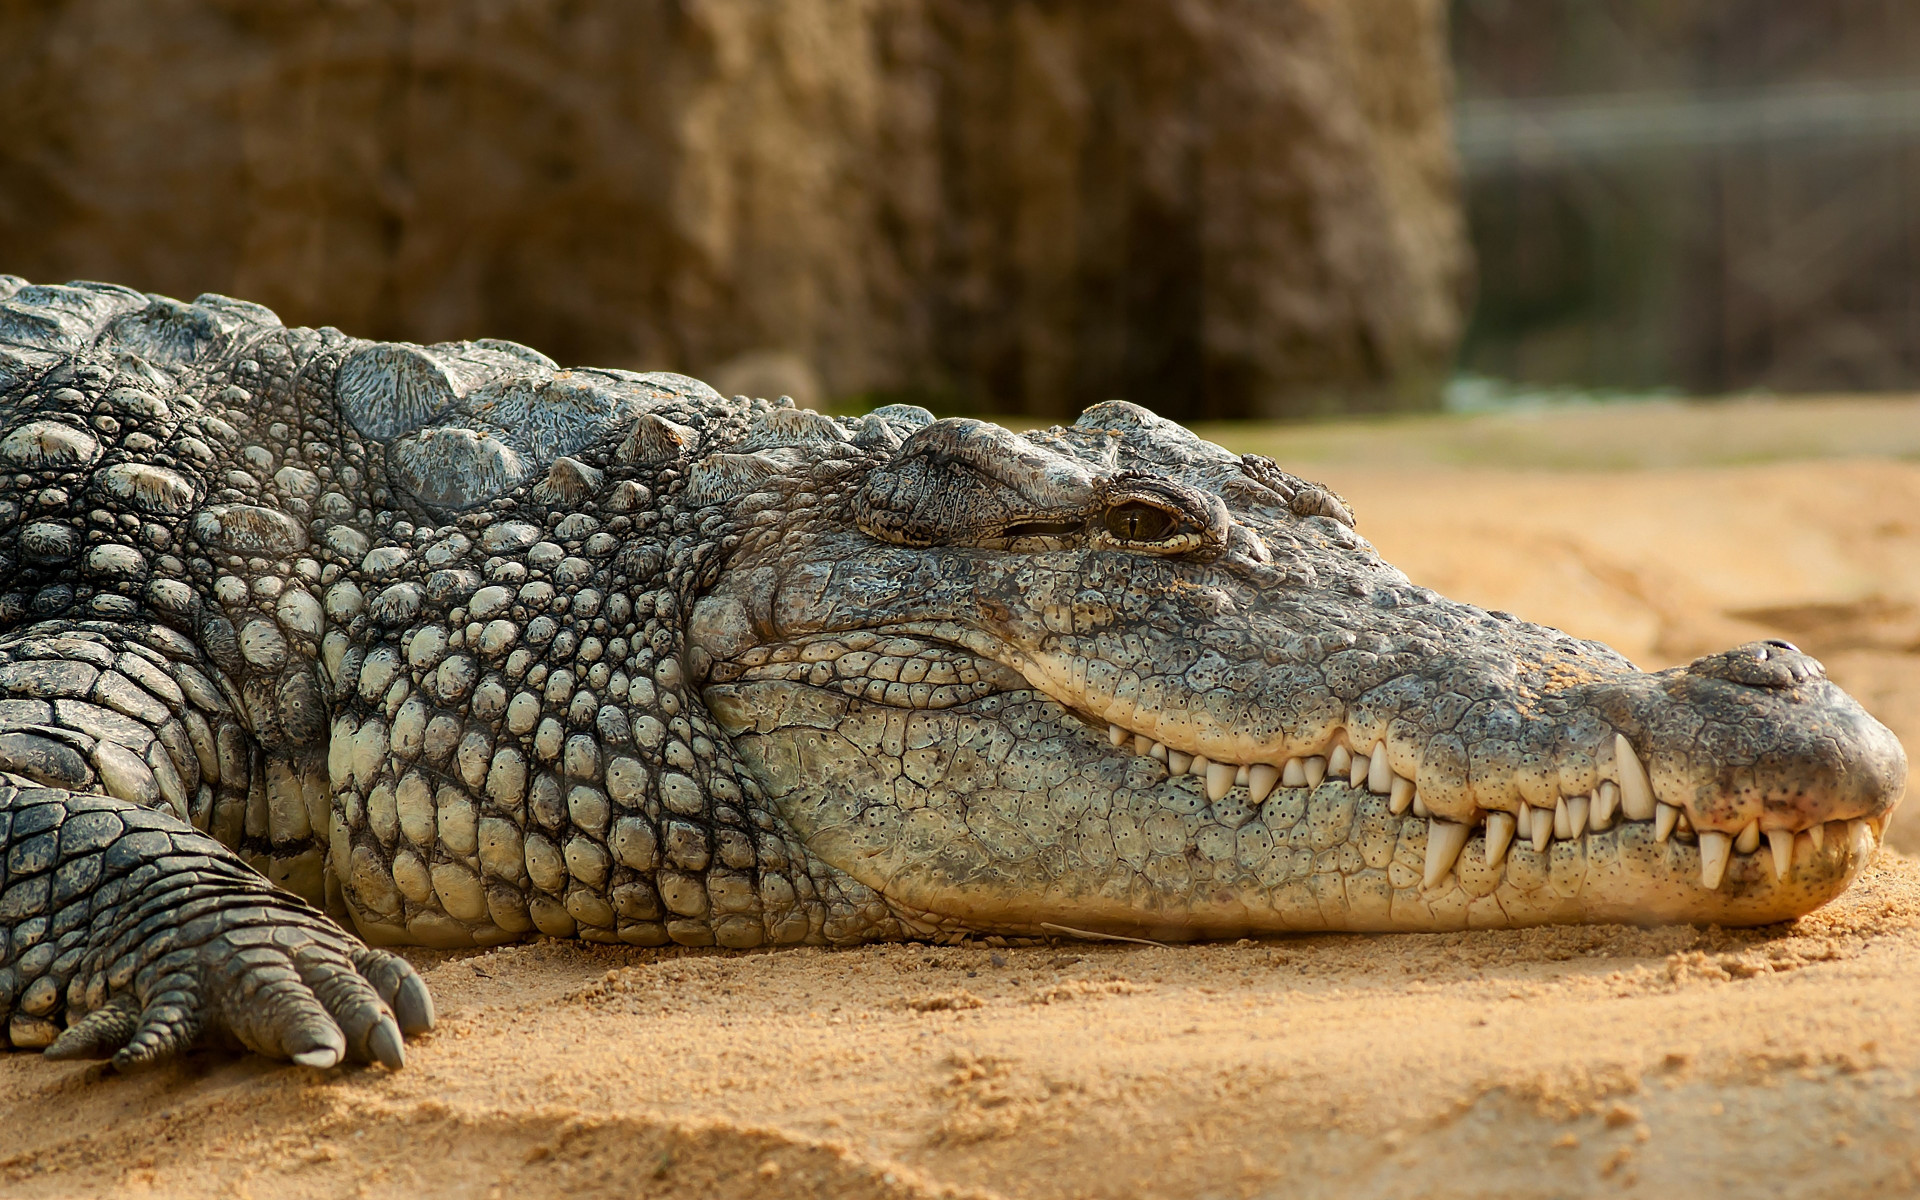 Nile crocodile | 1920x1200 wallpaper